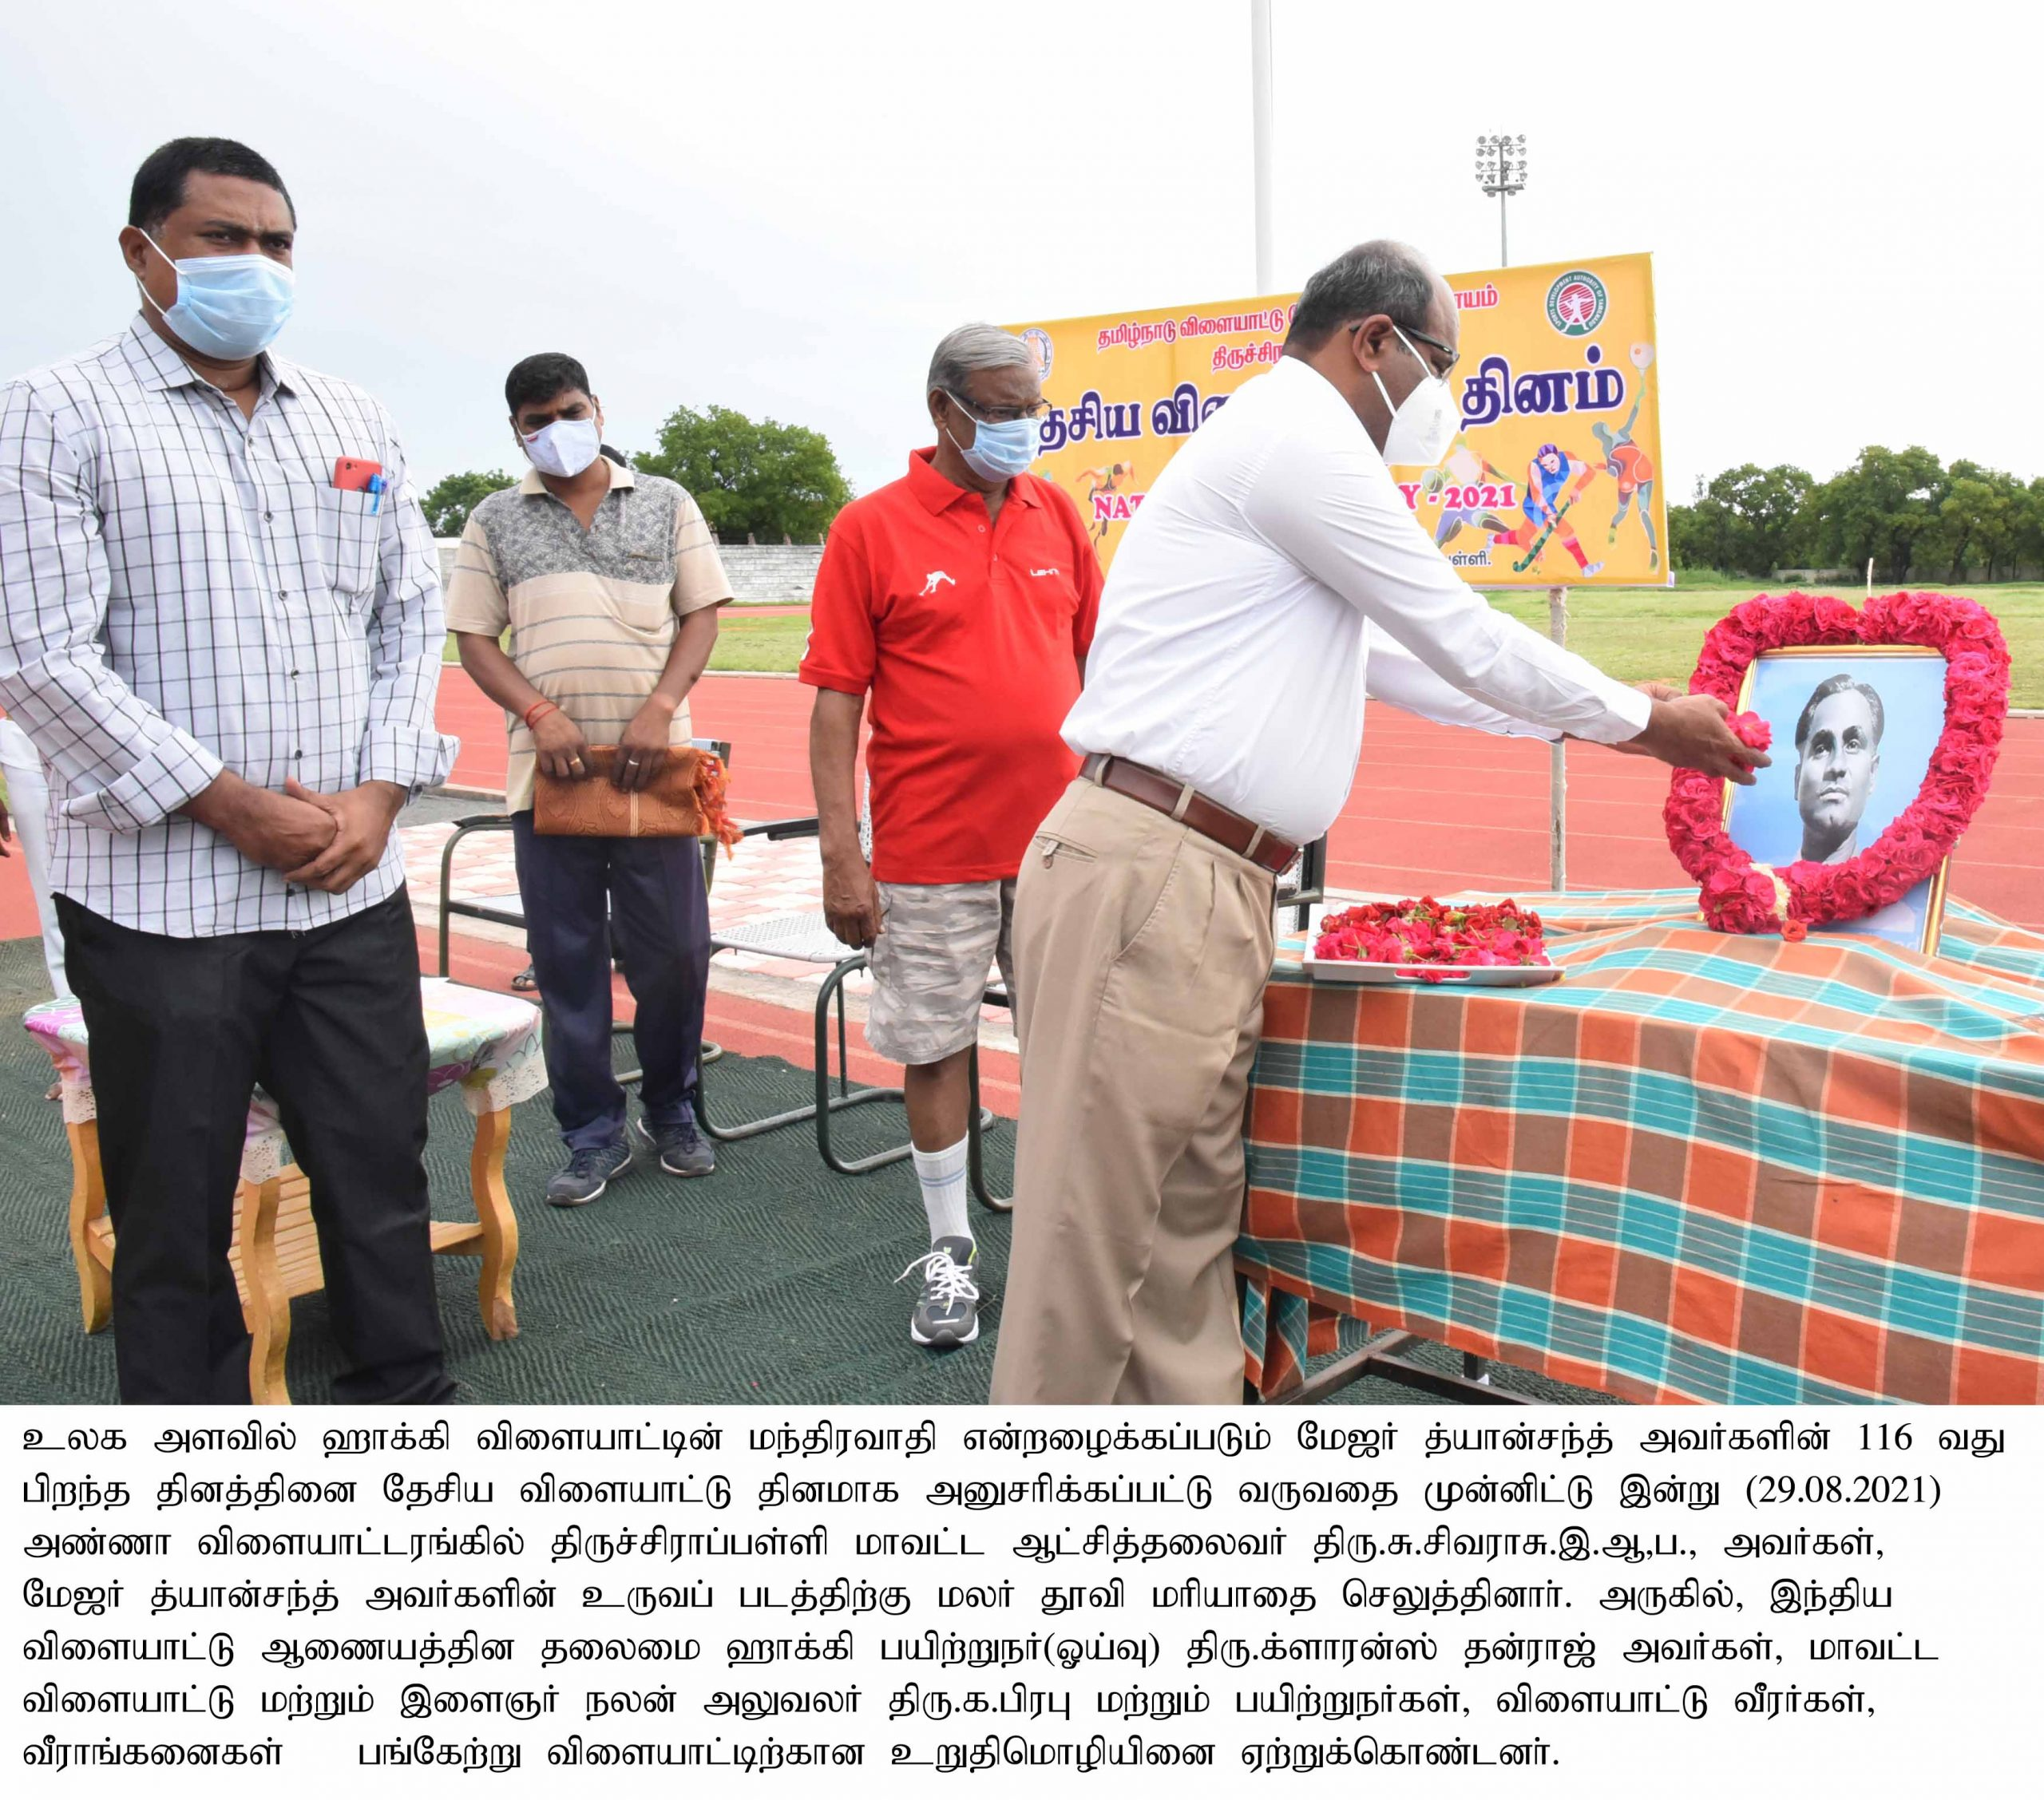 District Collector paid tribute to Majosr Dhyan Chand- National Sports Day(29-08-2021)